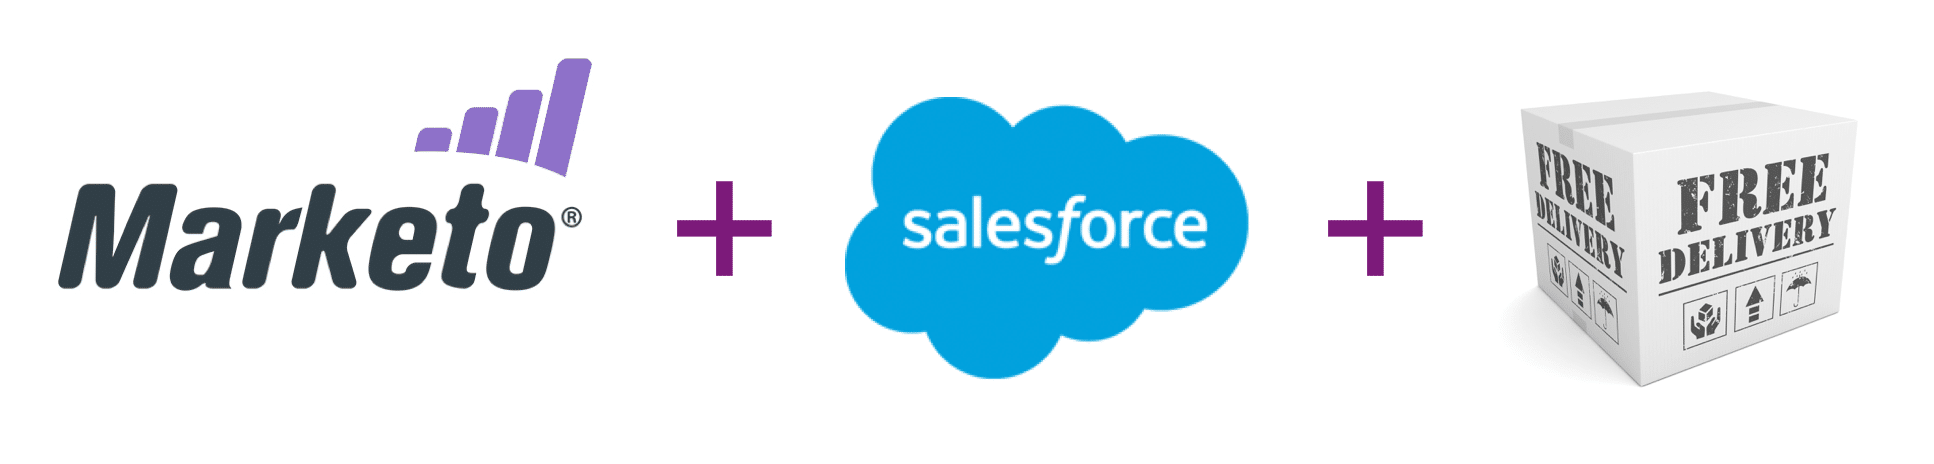 Marketo Marketing Automation + Salesforce CRM + Gratis Installatie